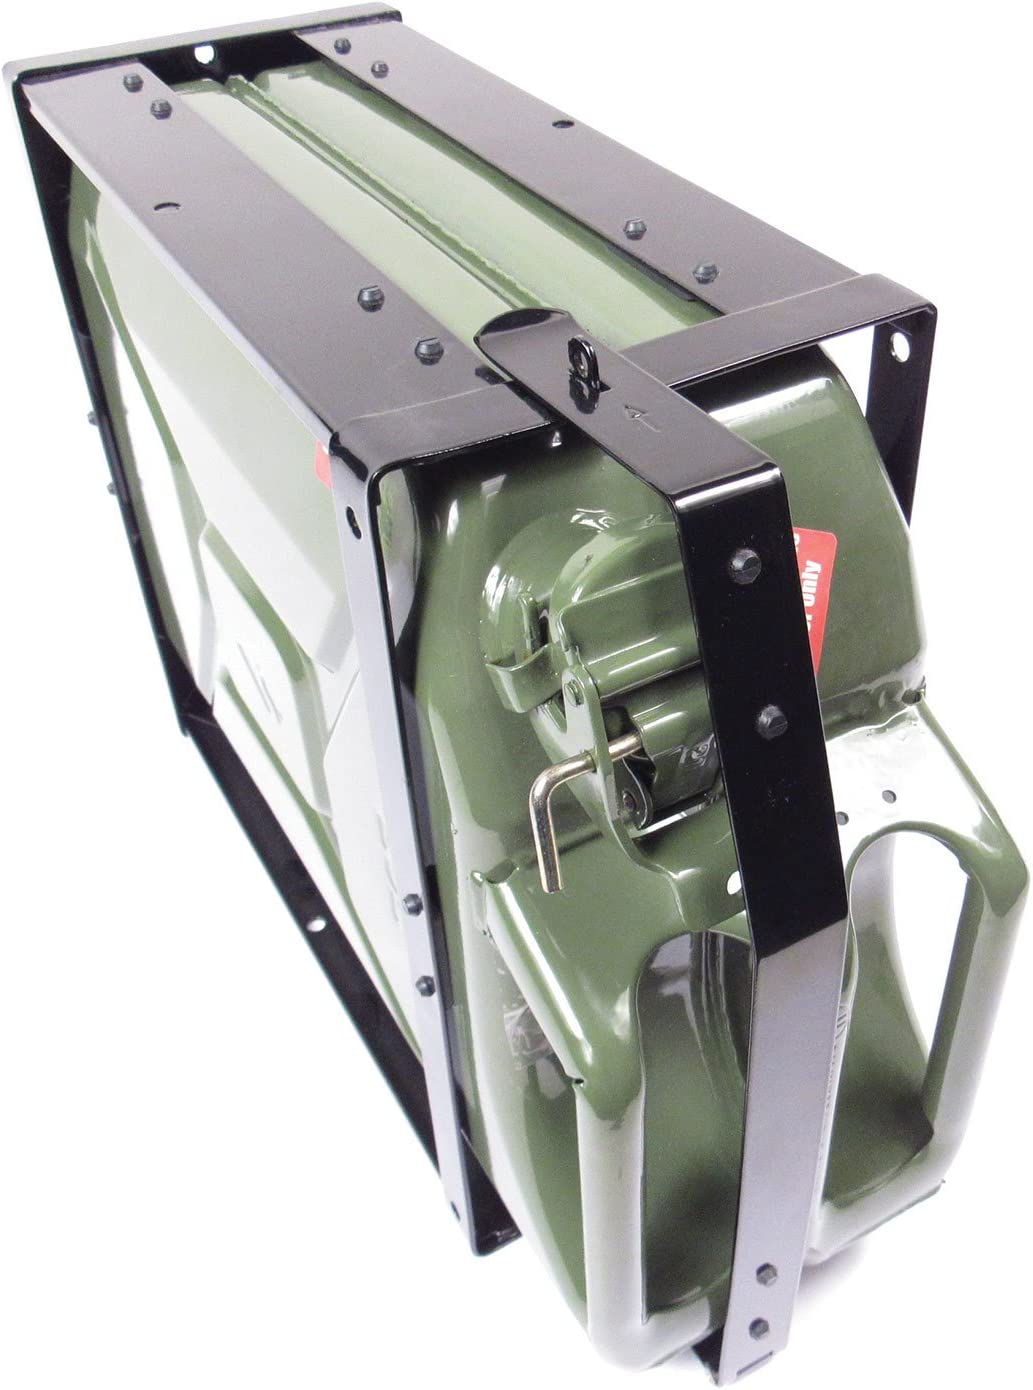 NATO Style Steel Jerry Can Holder for 20 Liter 5 Gal. Cans